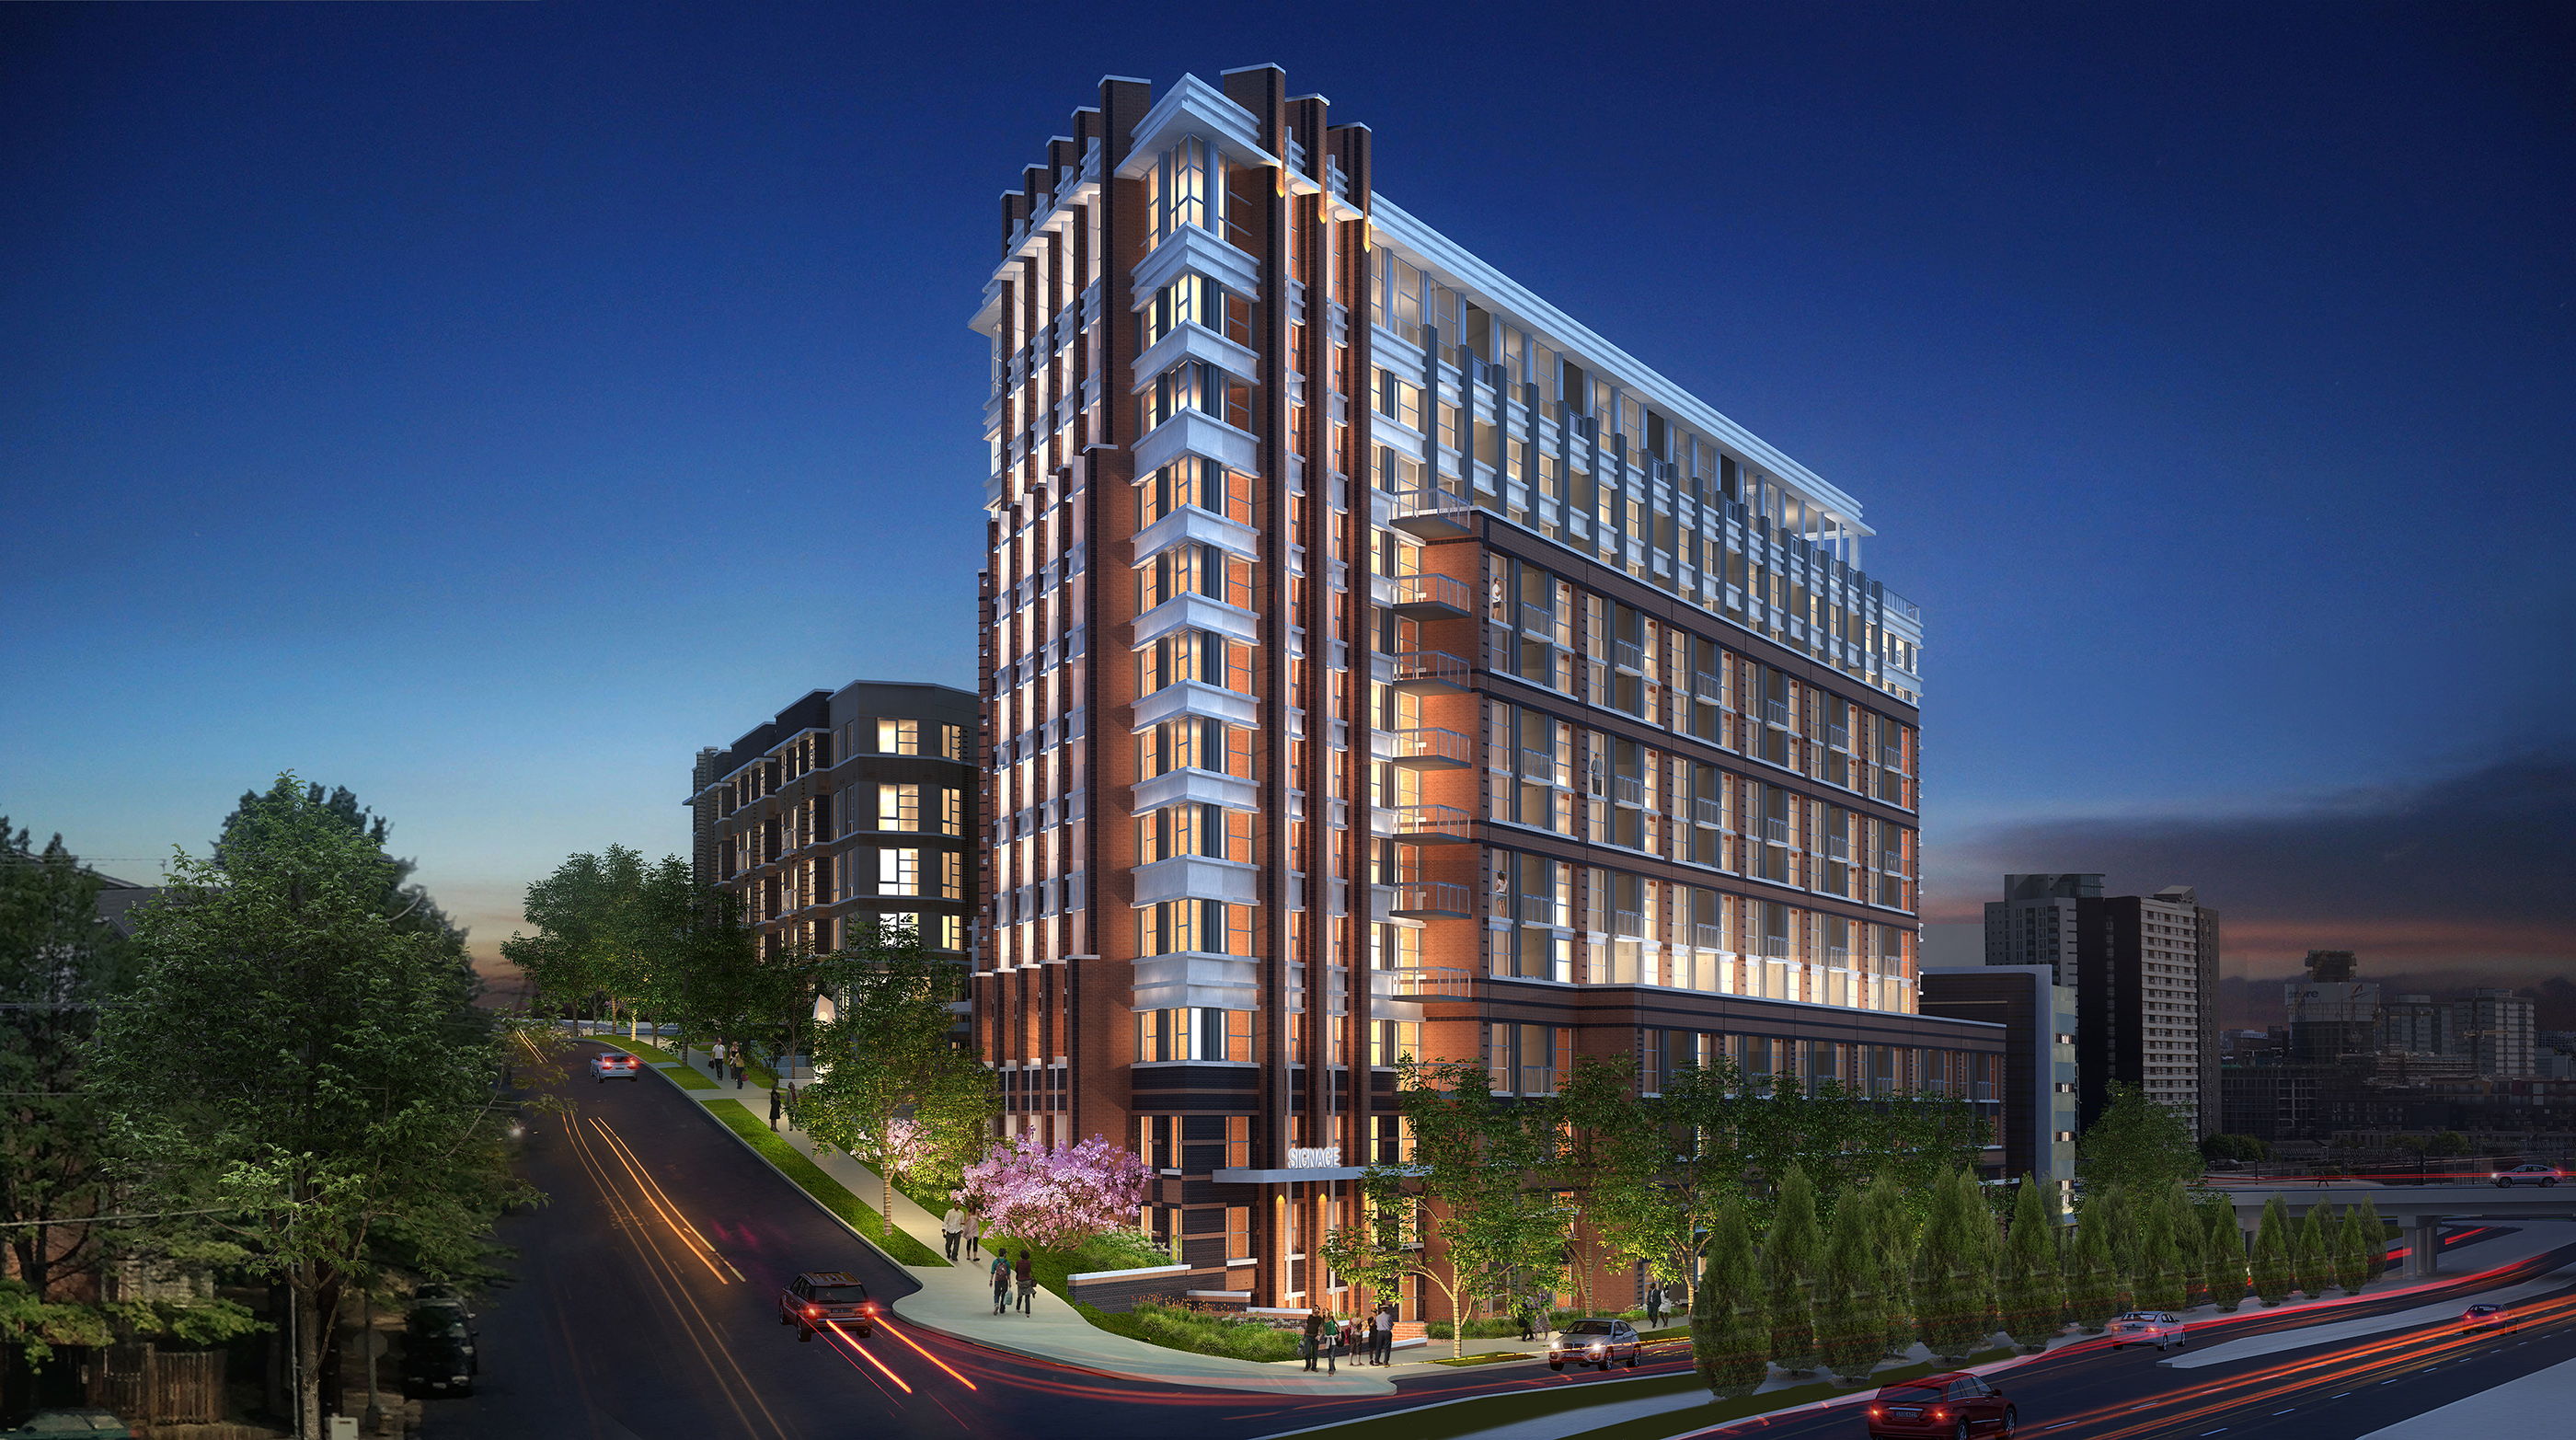 KTGY Architecture + Planning Designs High-Rise Apartments in Arlington, Va.